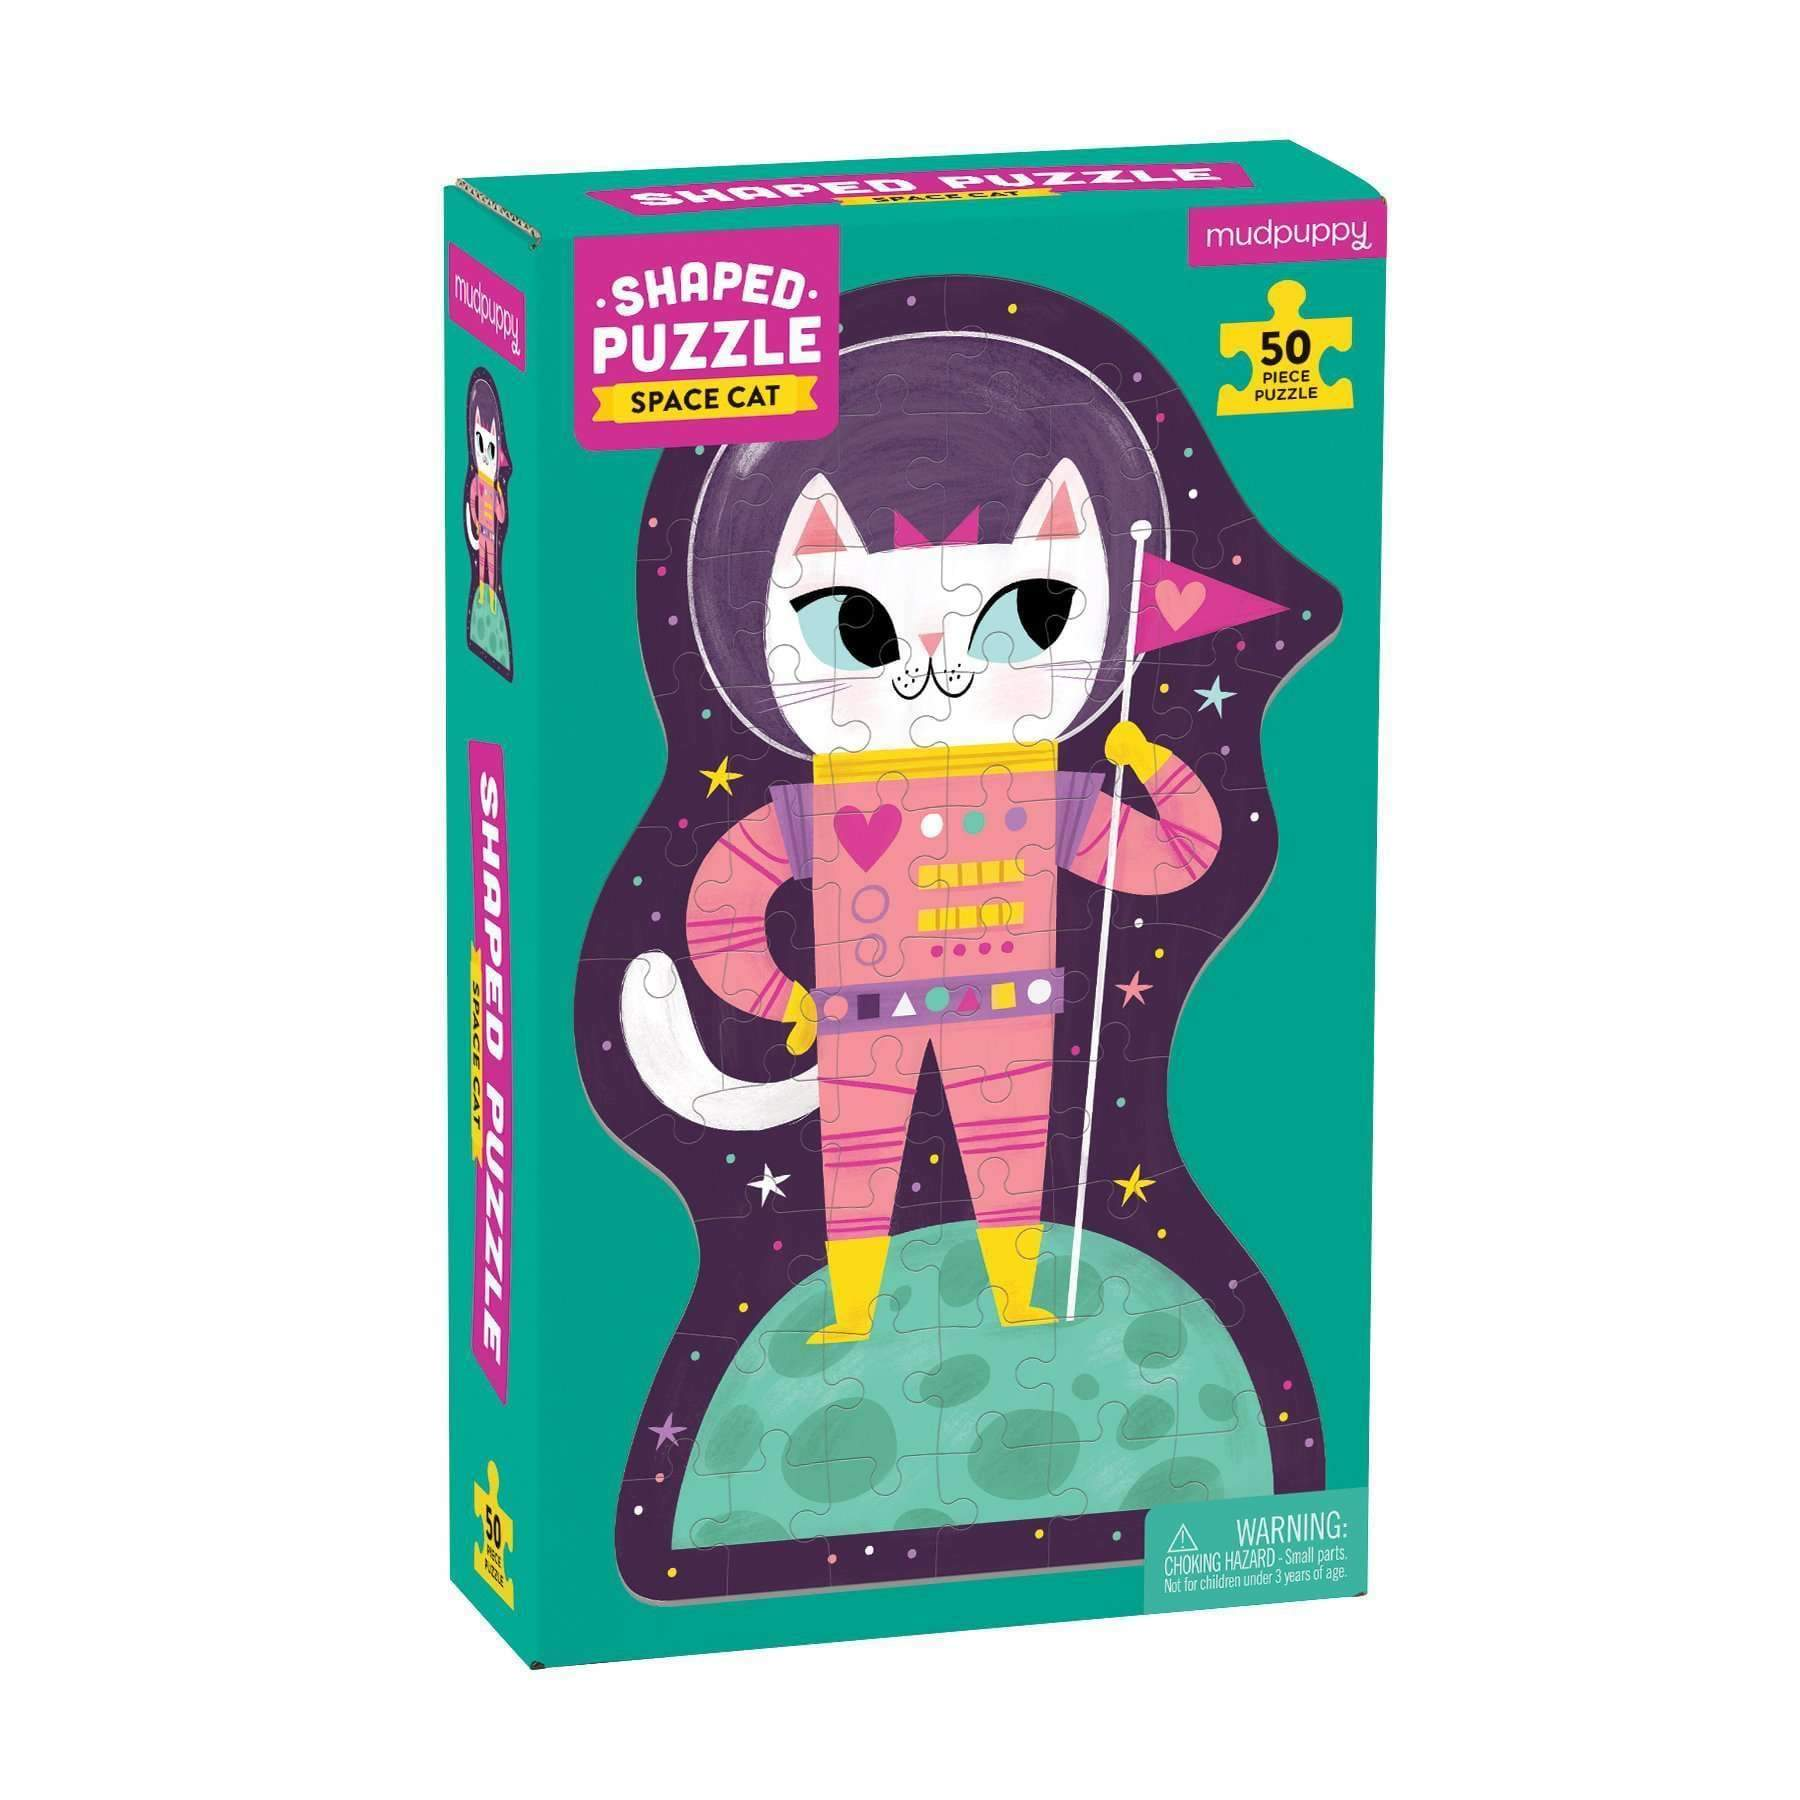 Space Cat 50 Piece Shaped Character Puzzle